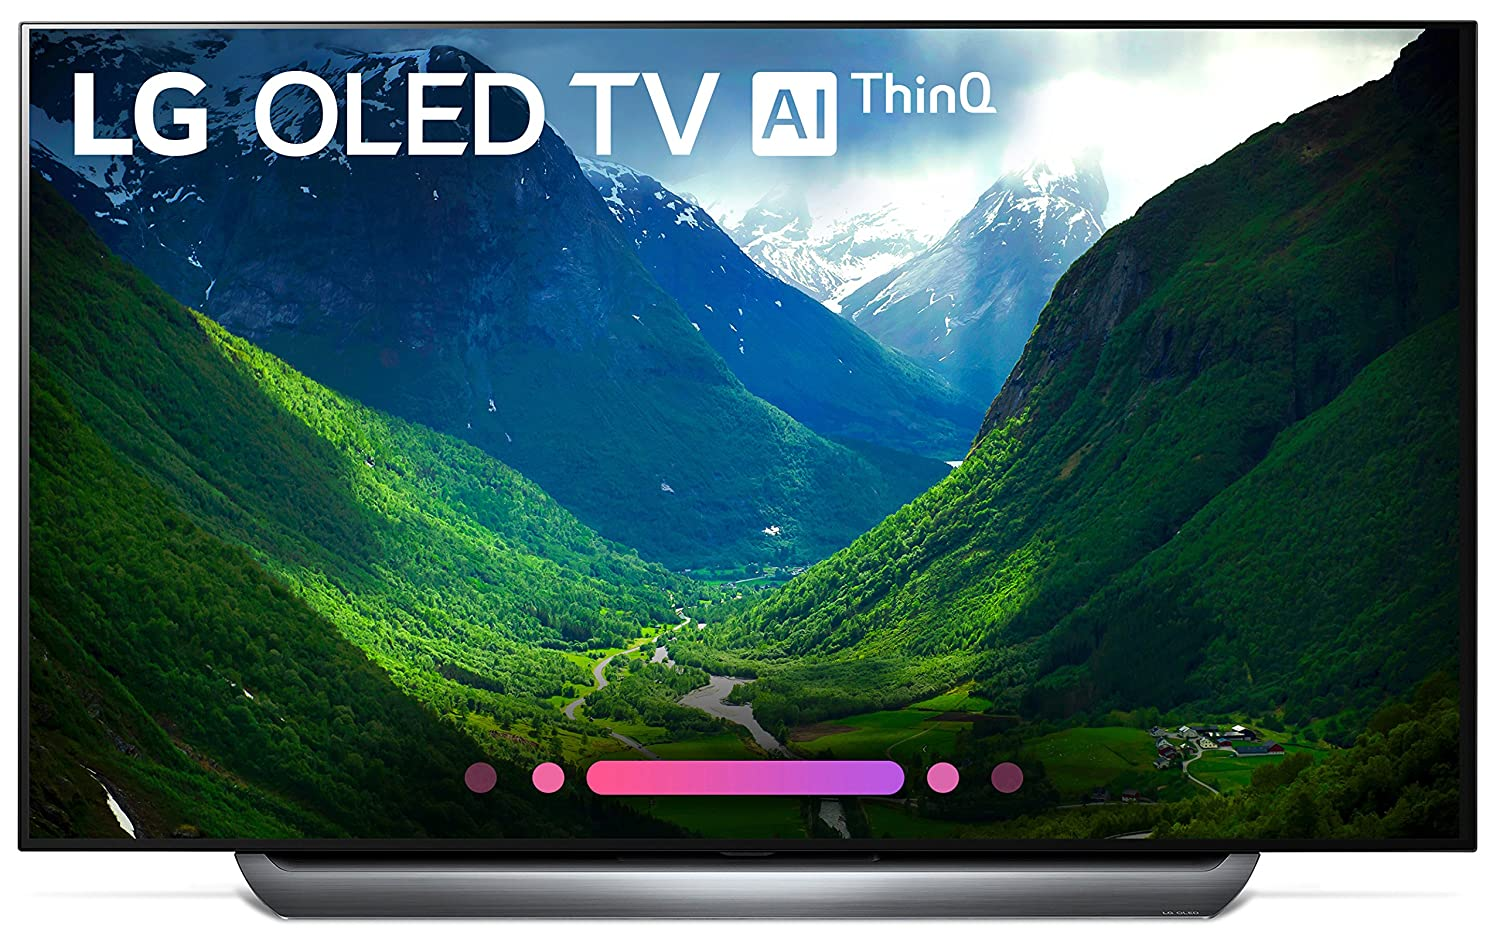 LG Electronics OLED65C8PUA 65-Inch 4K Ultra HD Smart OLED TV With A.I (2018 Model)